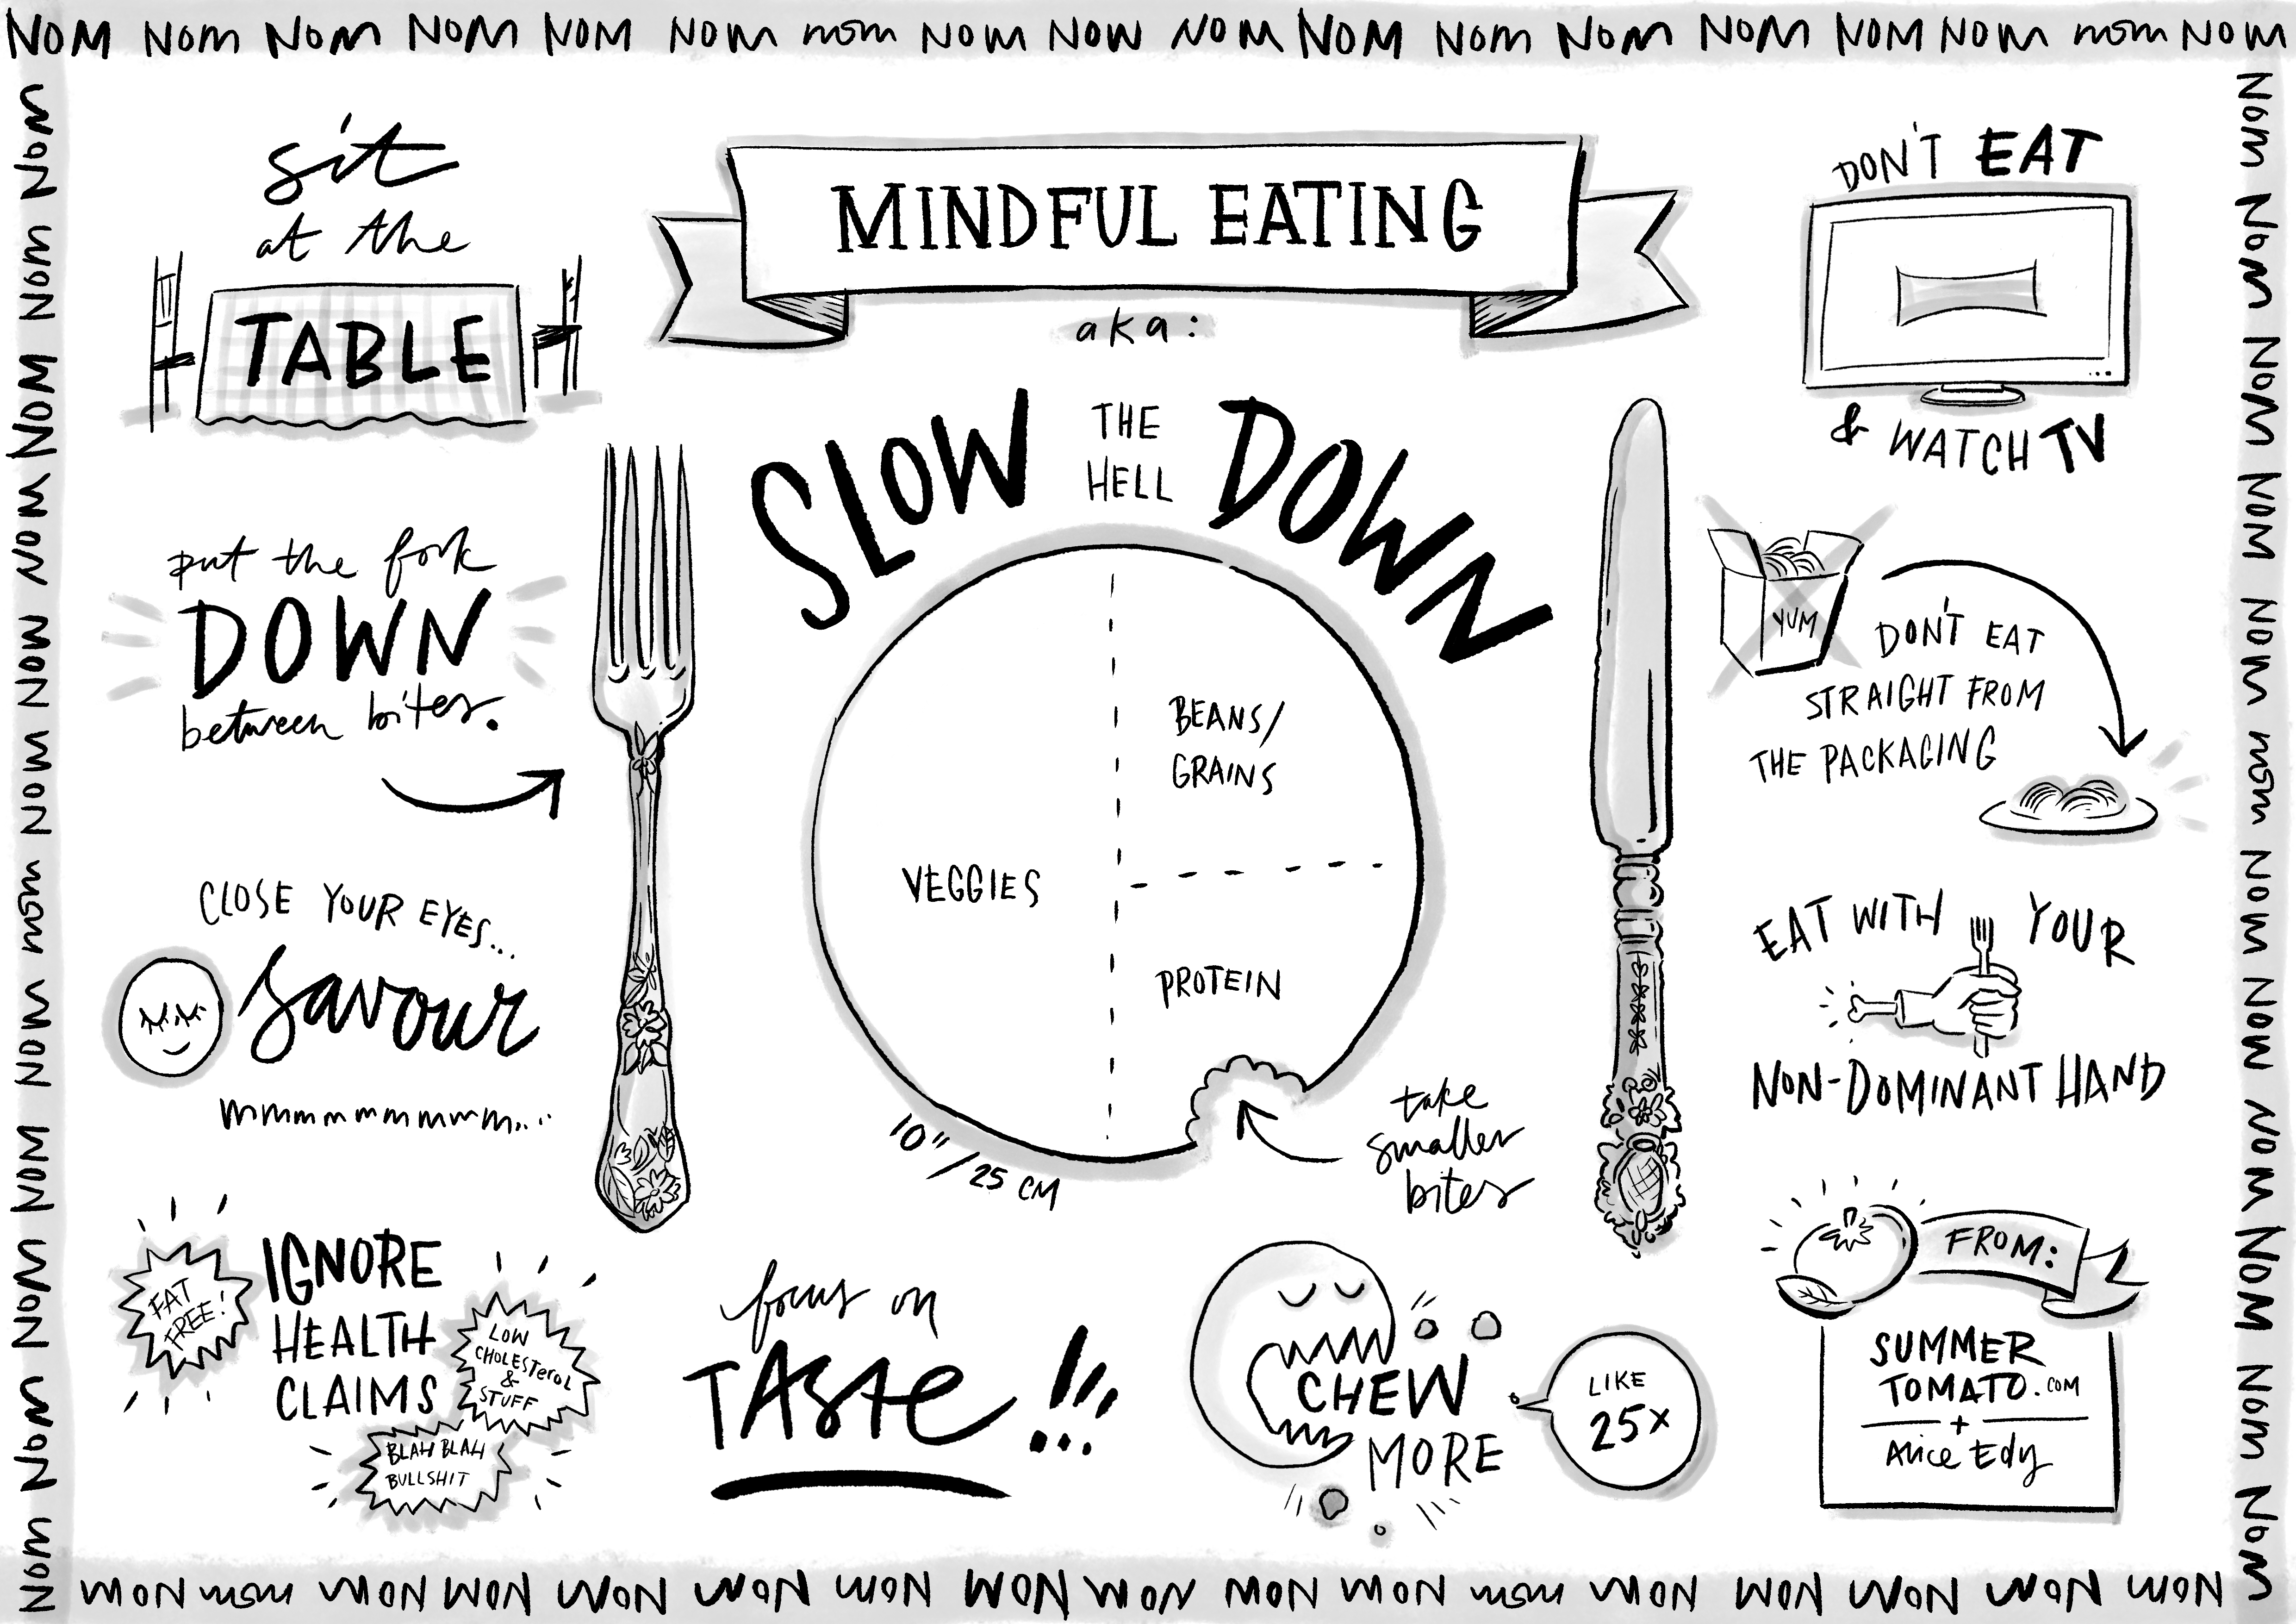 A Friendly Reminder On Eating Make It Mindful